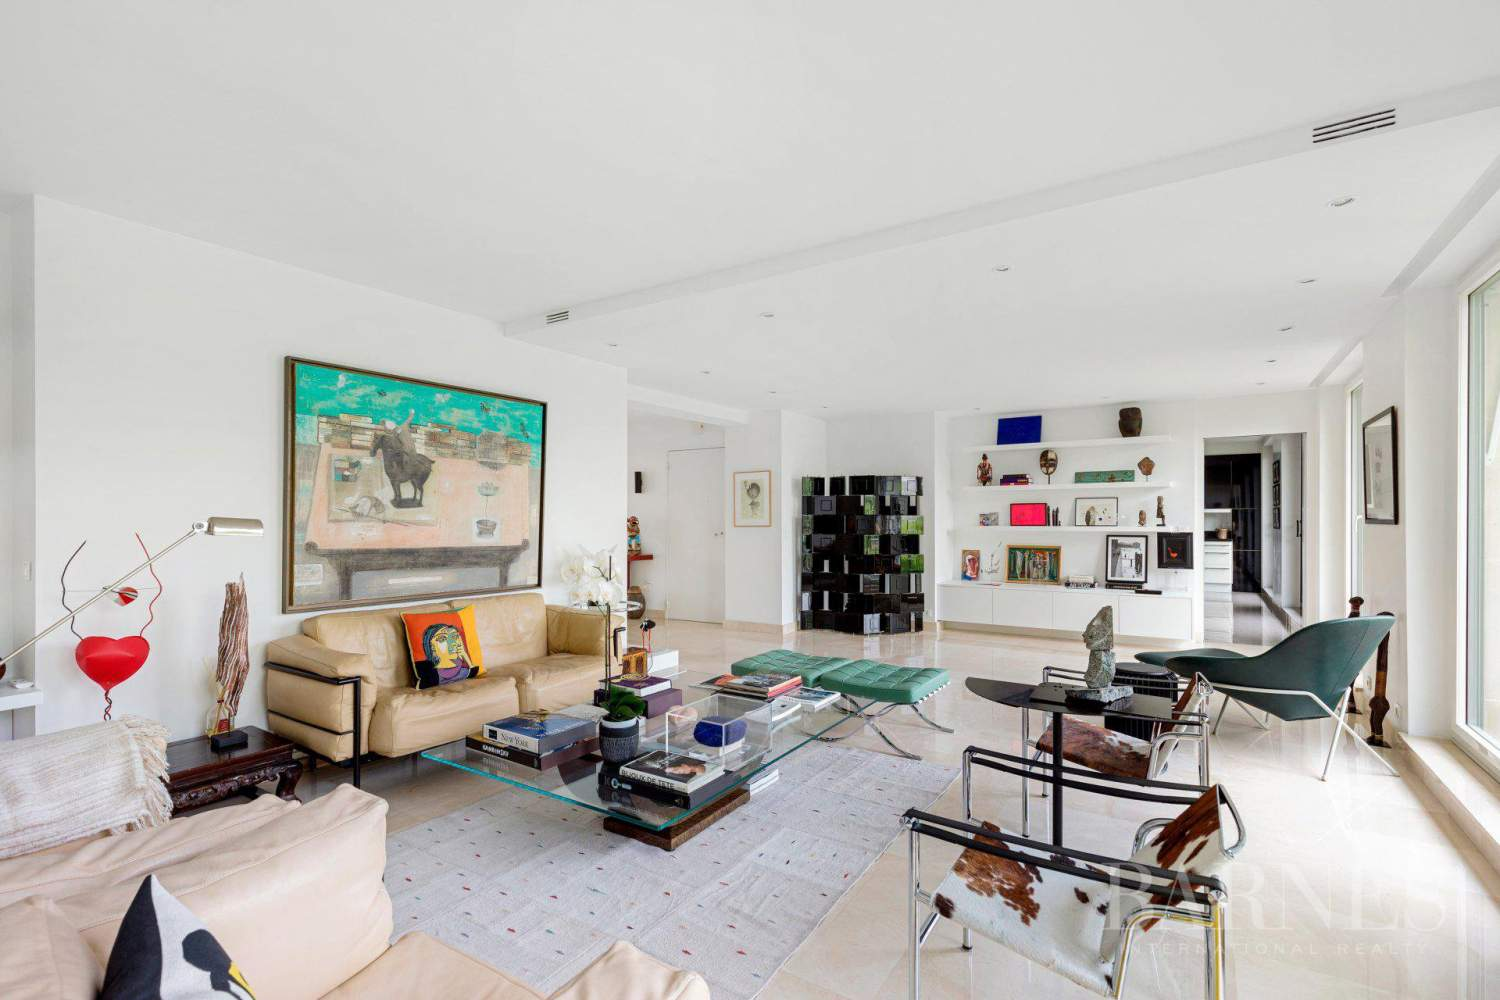 EXCLUSIVE - NEUILLY SAINT-JAMES - APARTMENT WITH RECEPTION ROOMS - UPPER FLOOR - PANORAMIC VIEWS picture 7